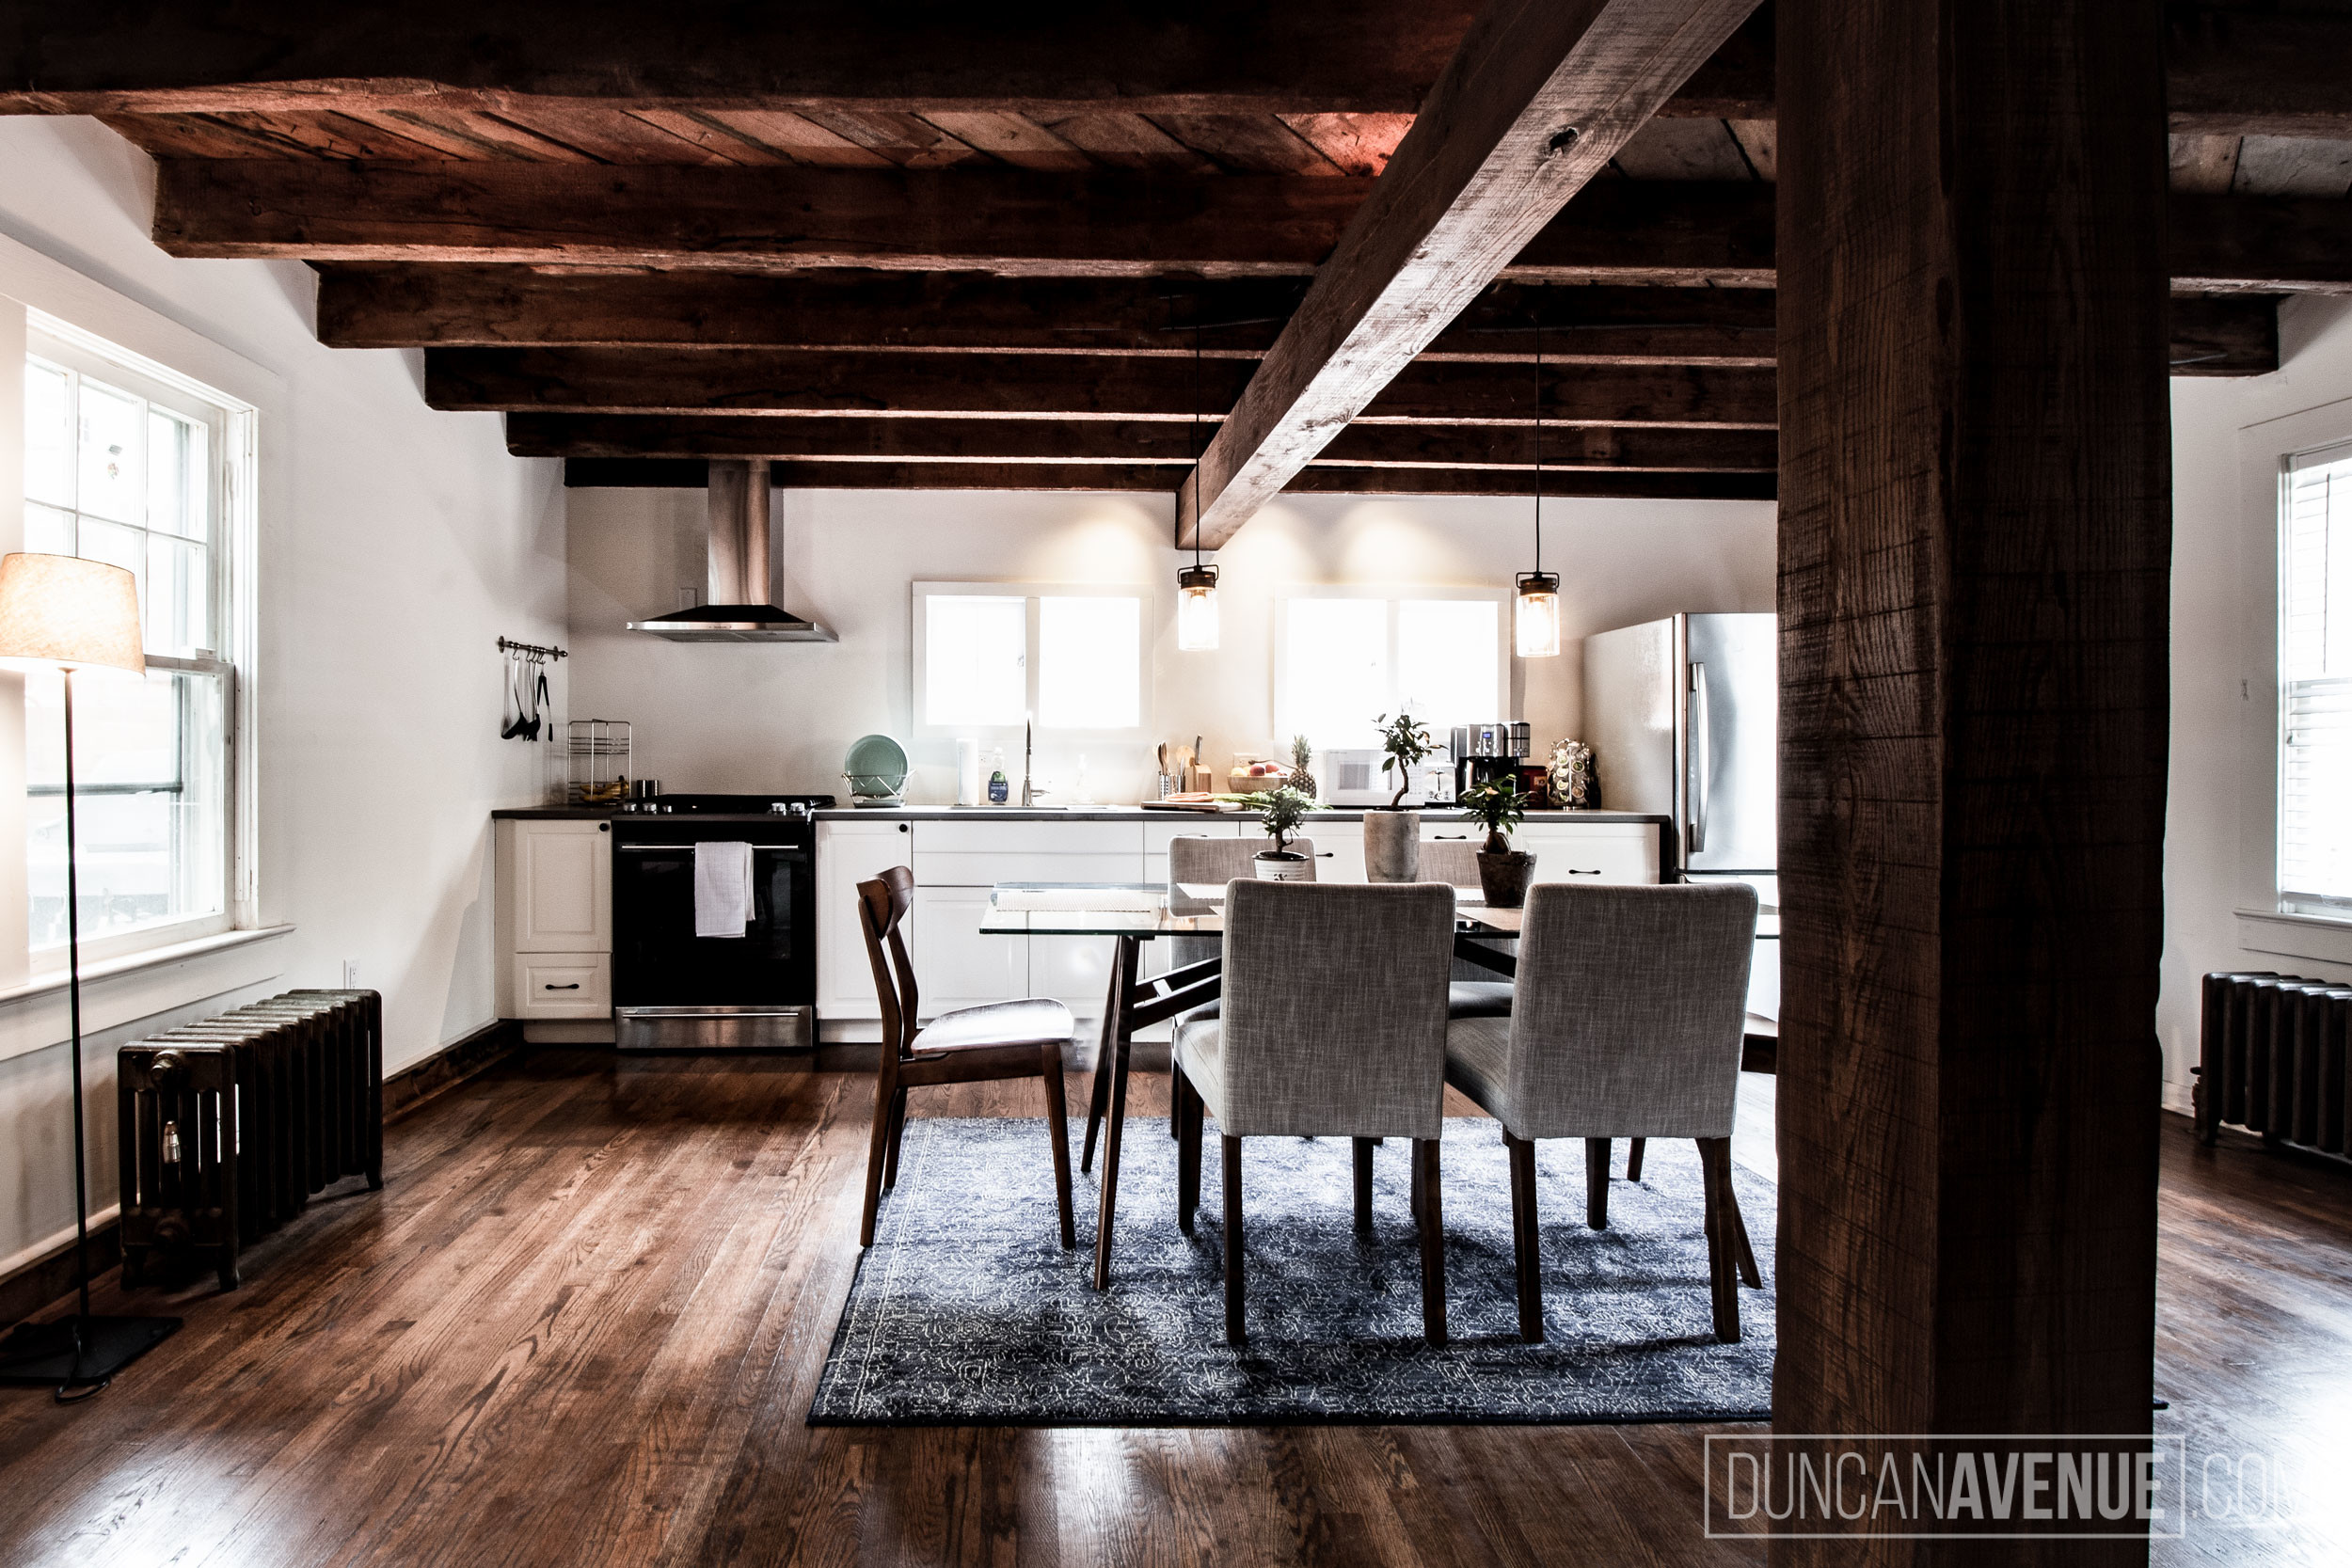 Woodstock, NY - Real Estate Photography Project